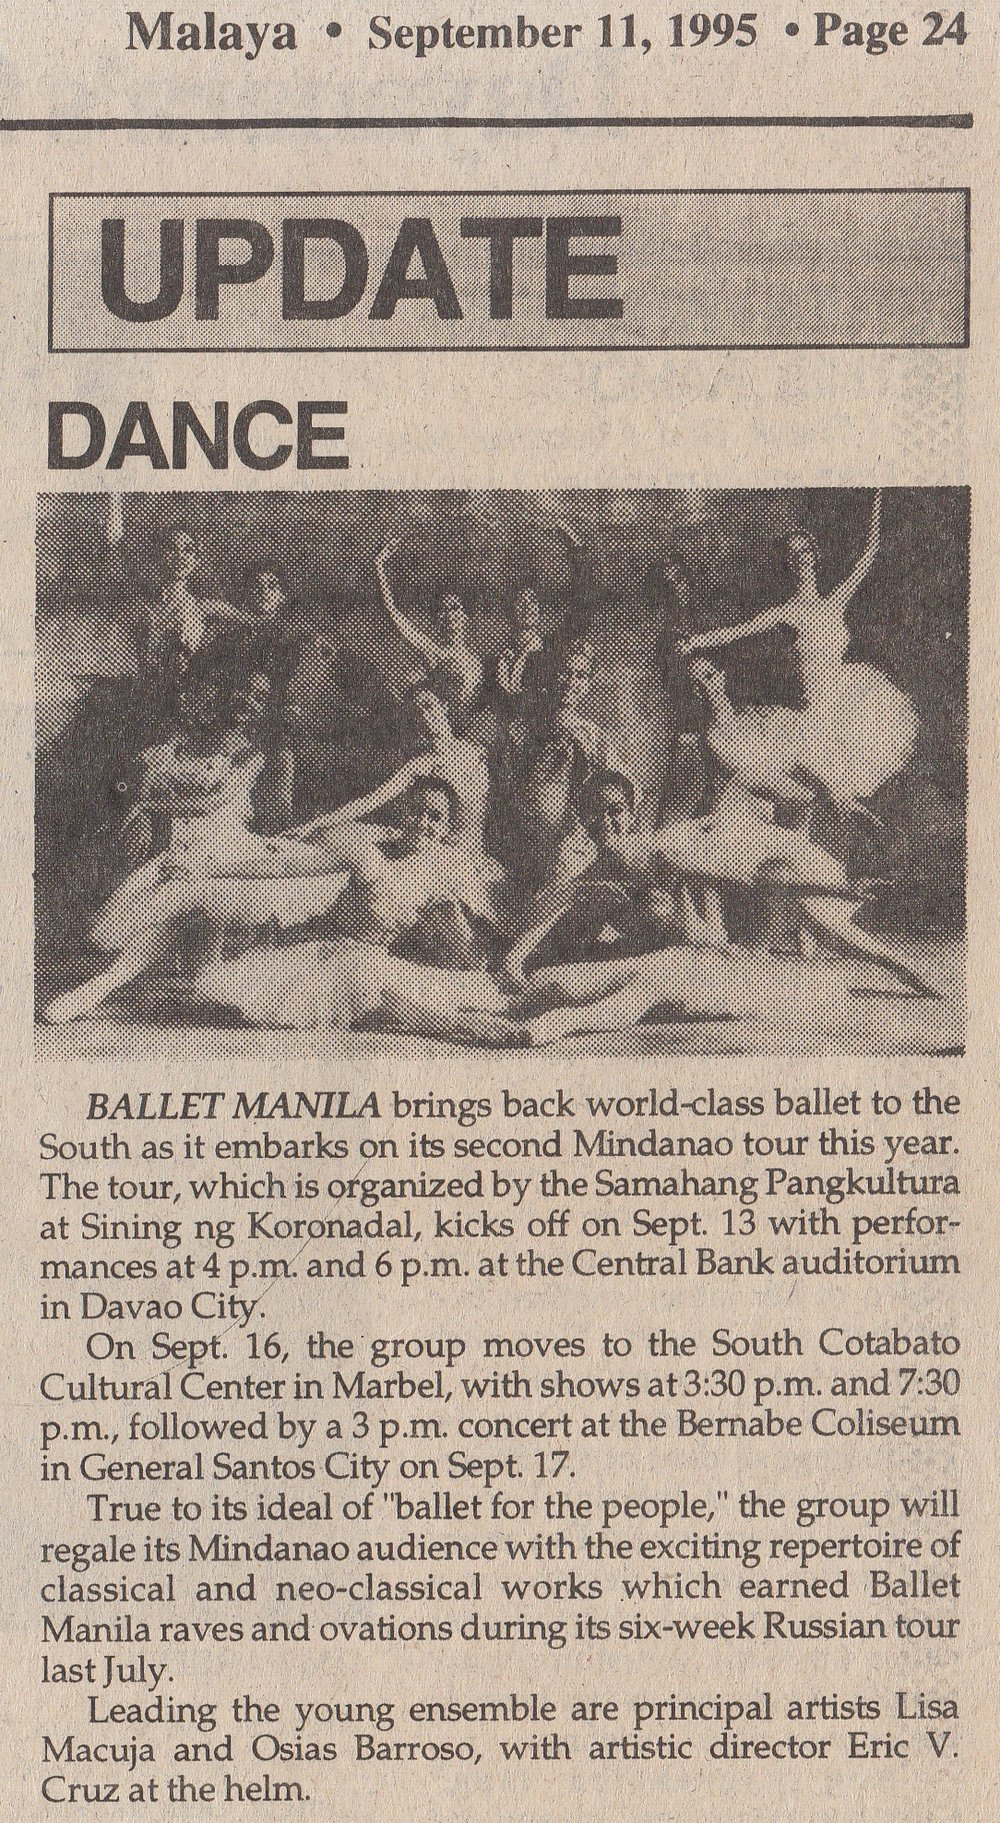 The Mindanao tour showcased the same repertoire that had earned raves and ovations during the company's Russian tour, according to this item in Malaya. From the Ballet Manila Archives collection